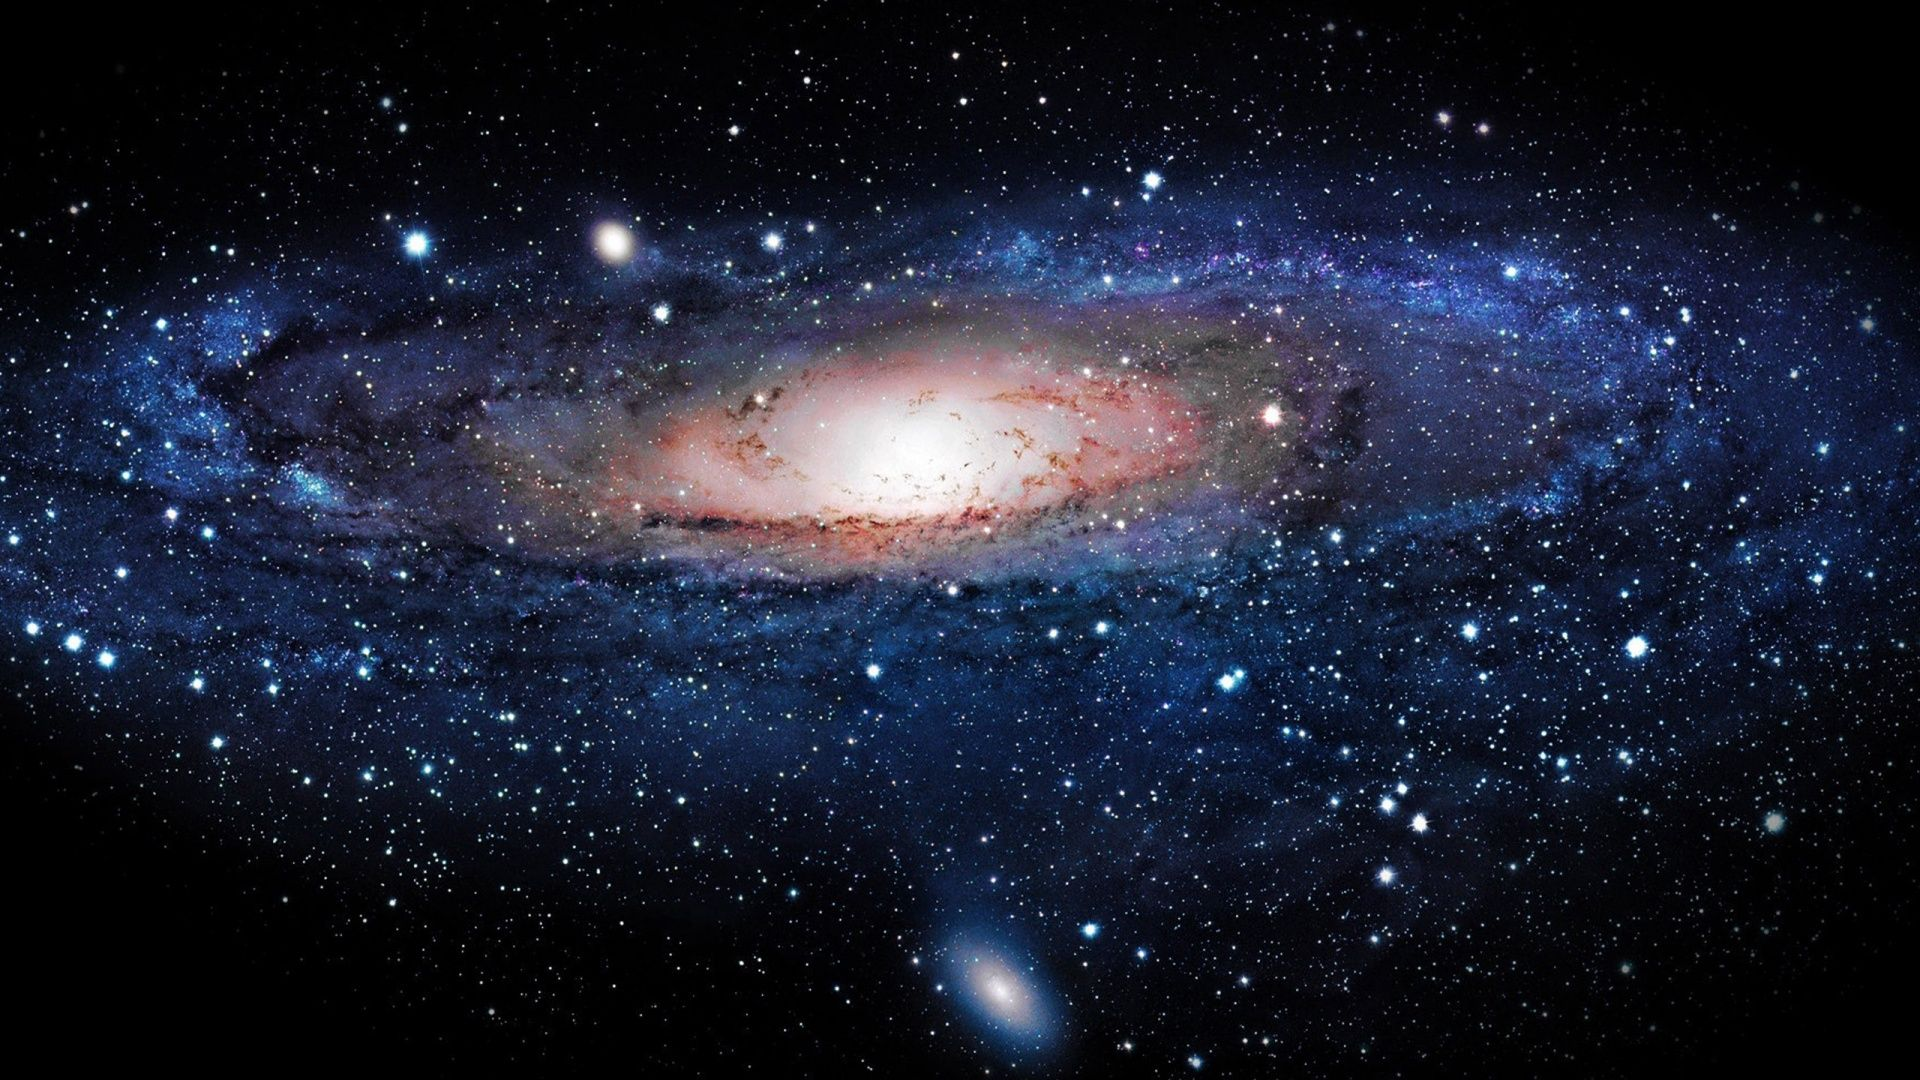 Galaxy Computer Wallpaper Hd 1080p Hd Desktop Wallpapers With